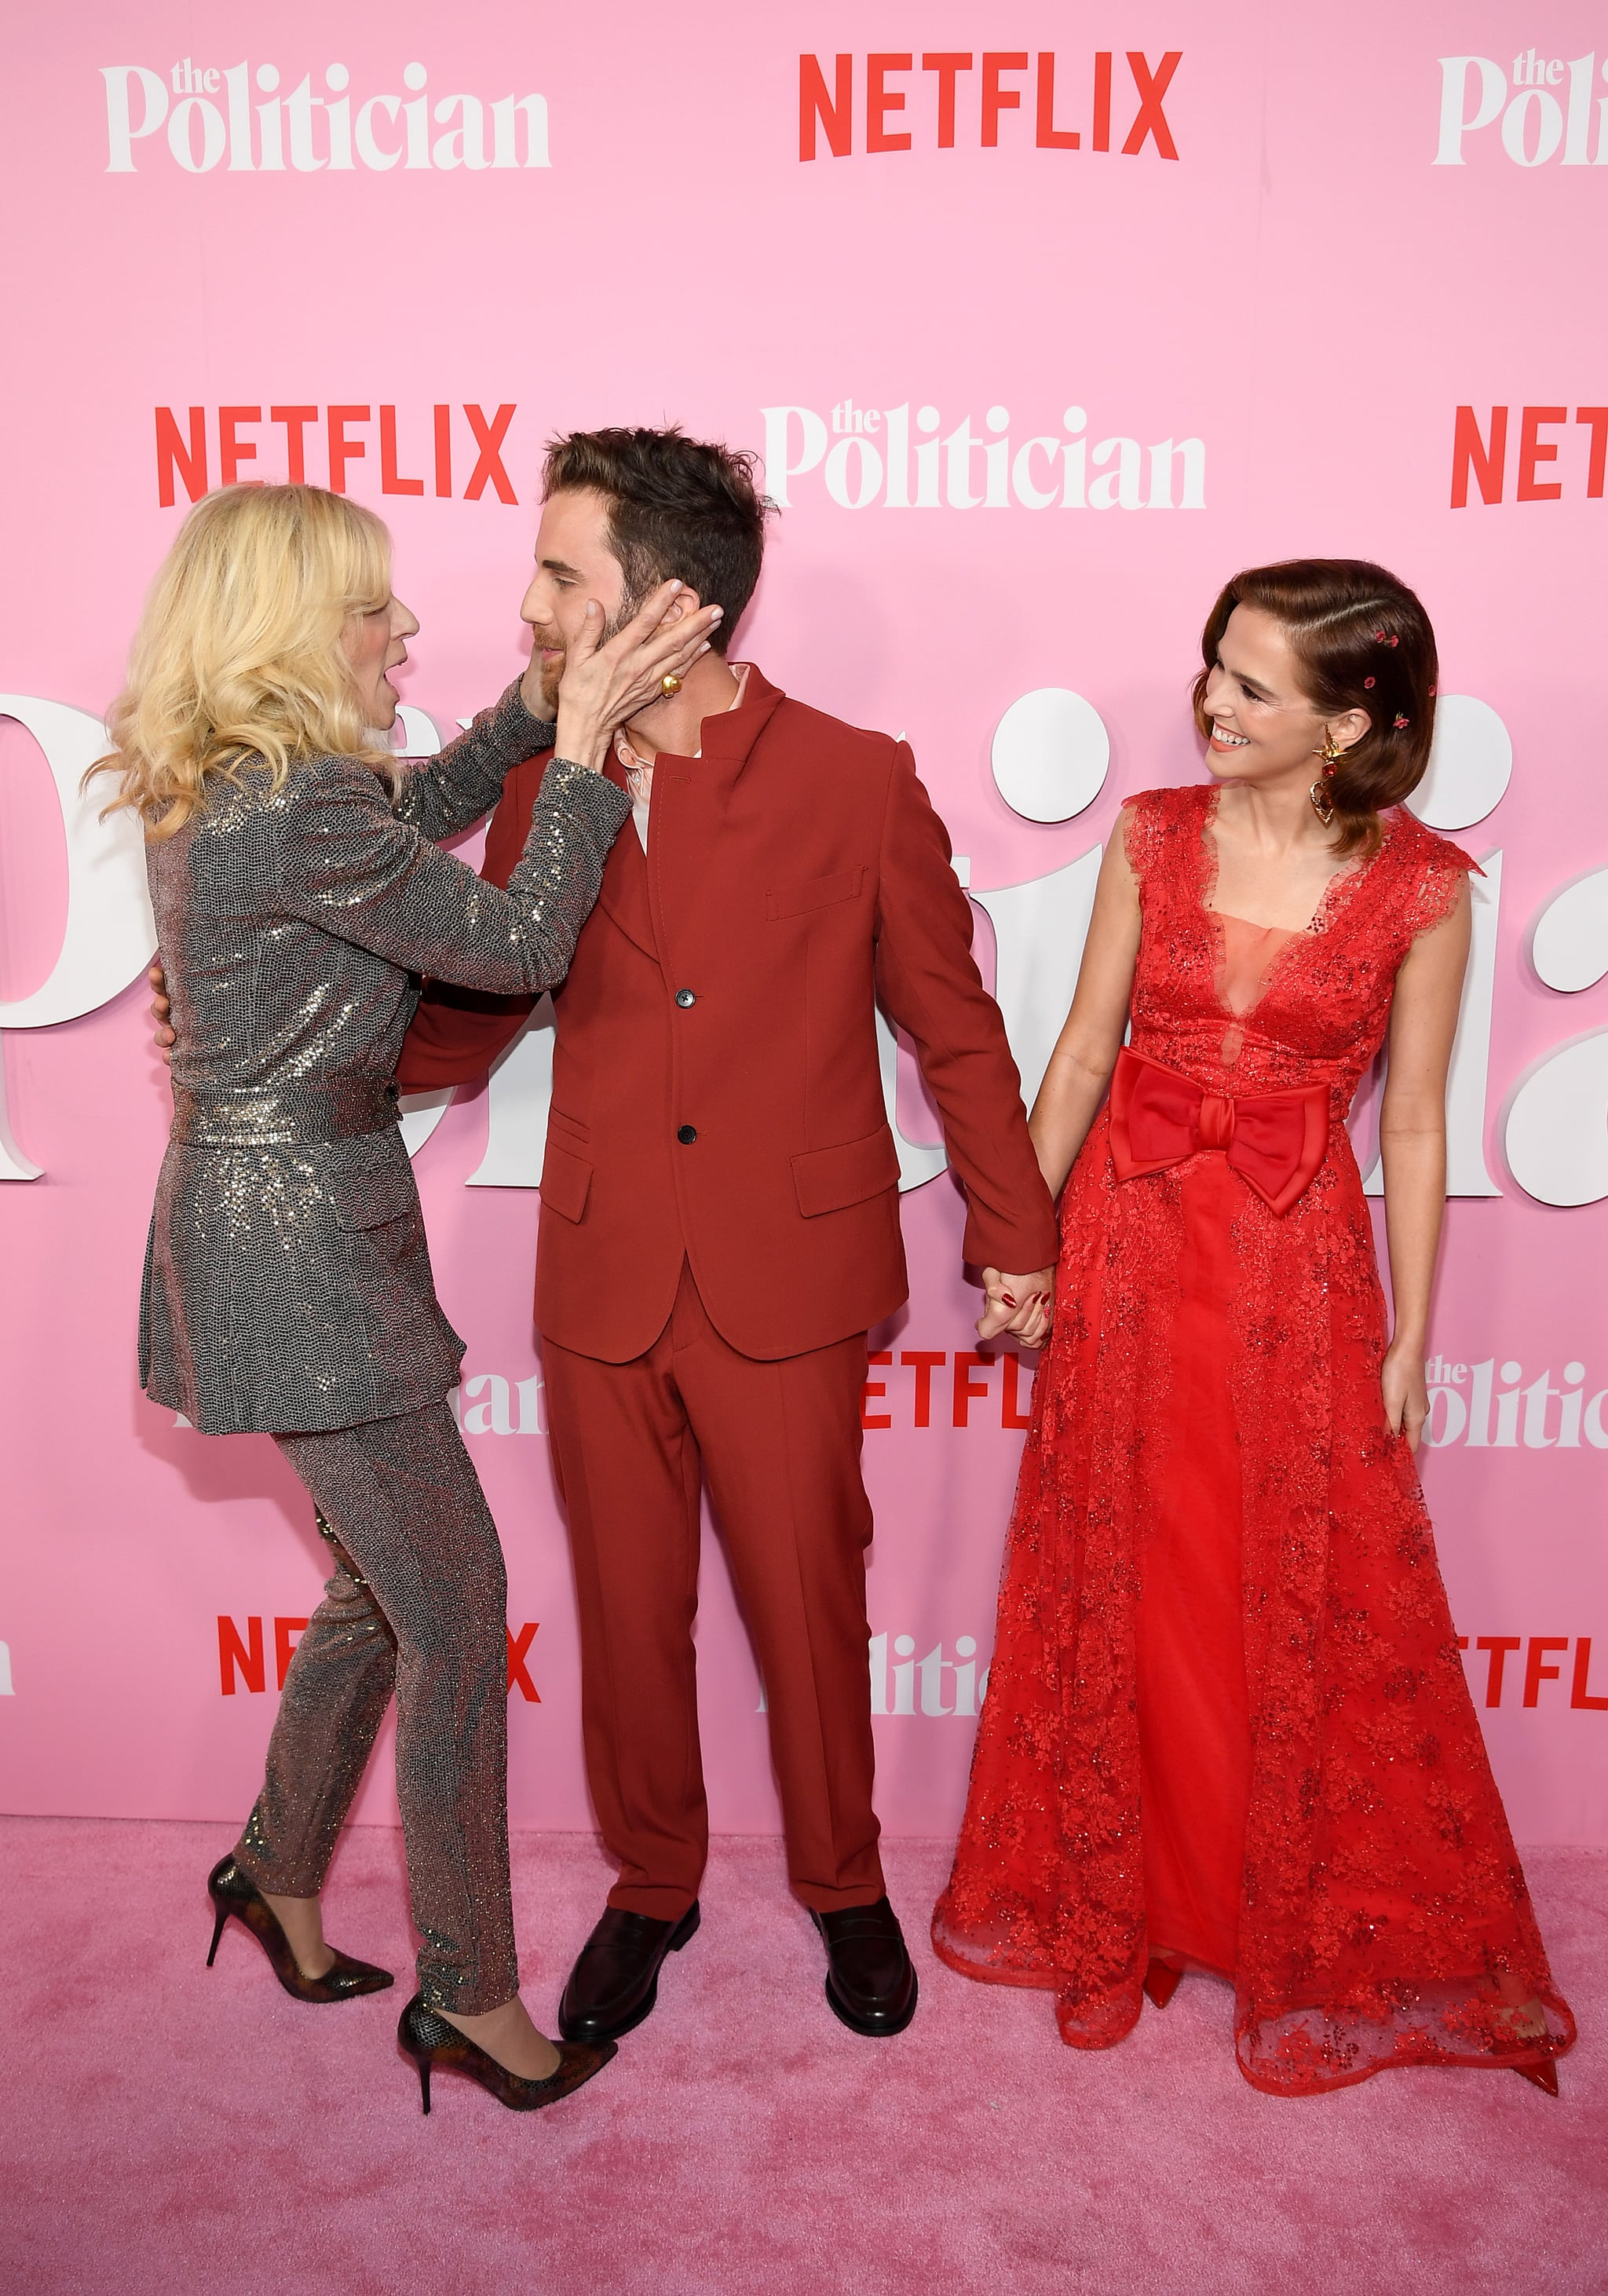 Judith Light Ben Platt And Zoey Deutch At The Politician